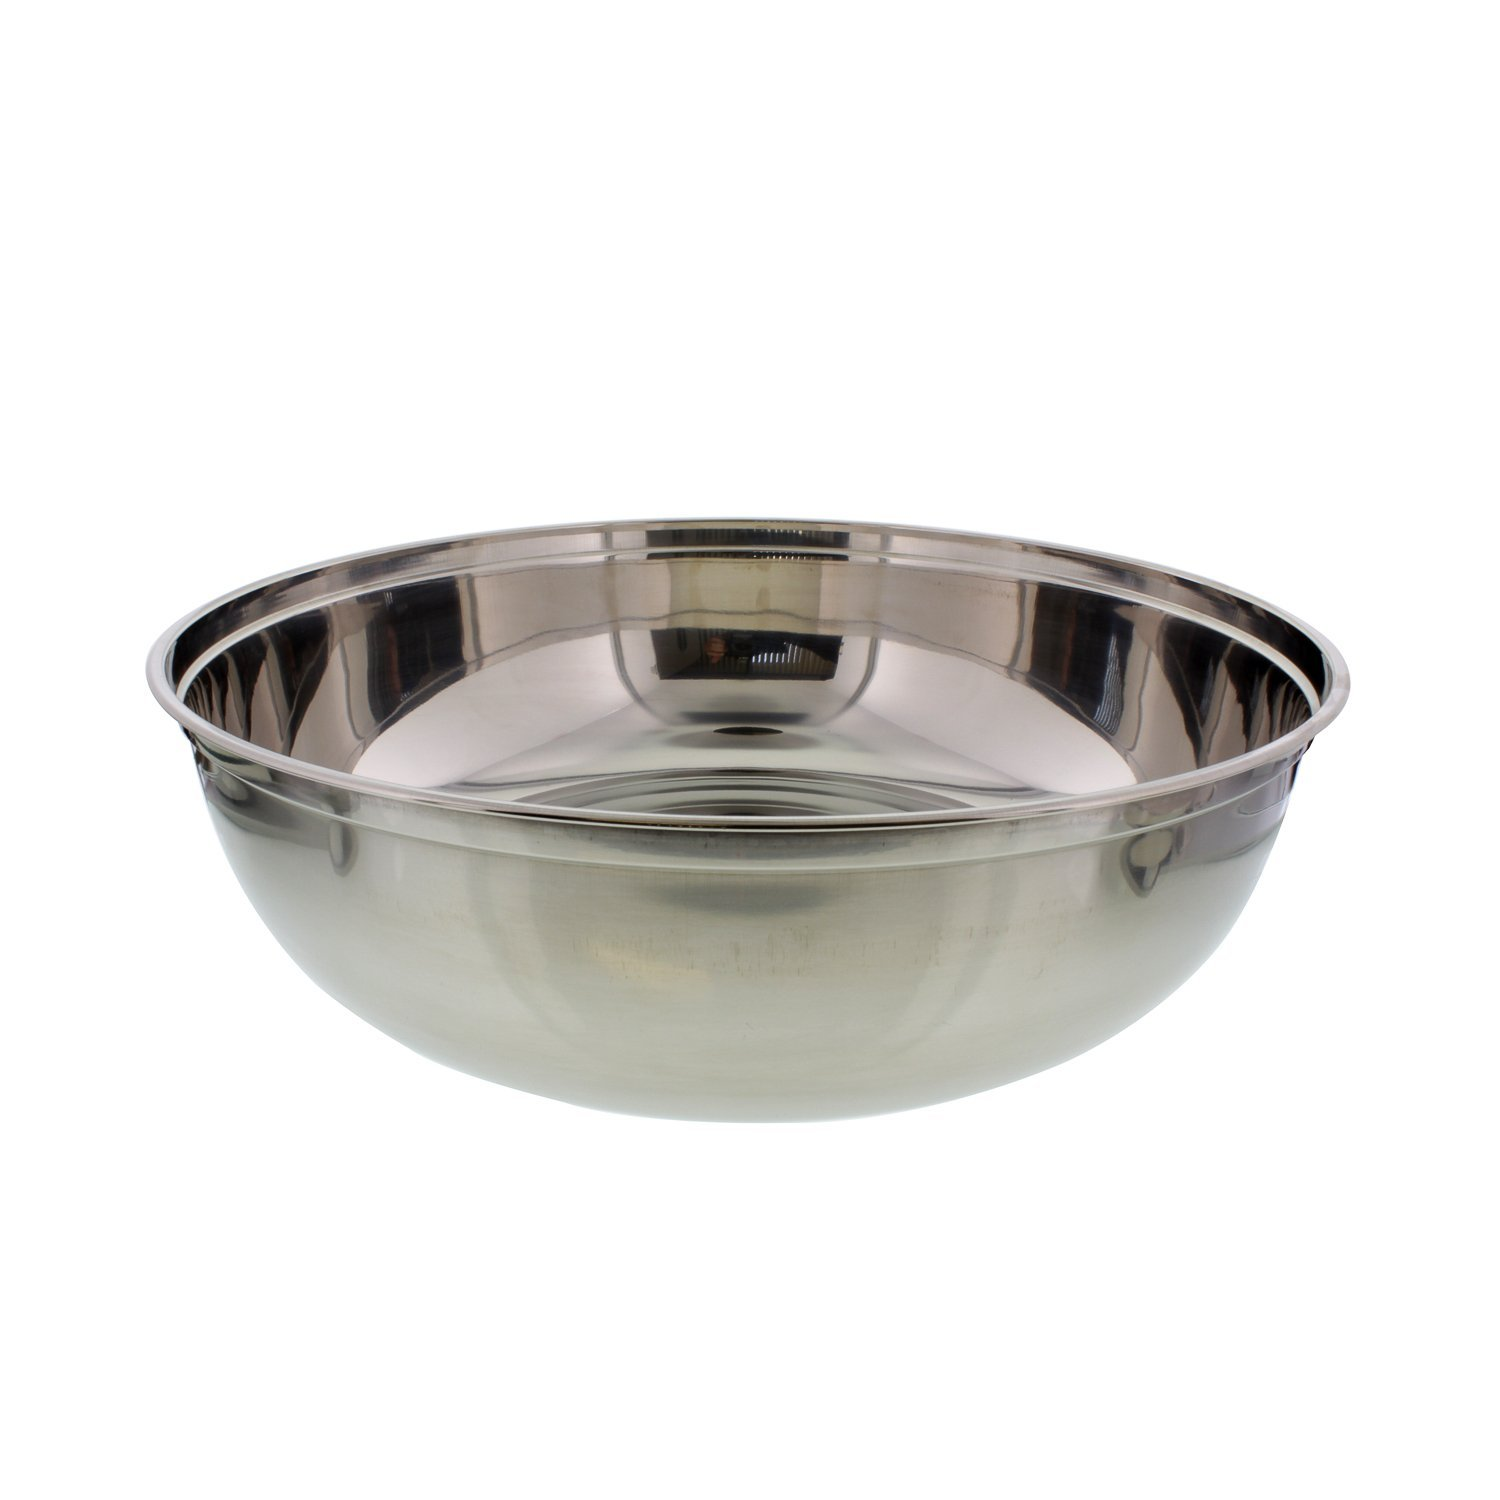 Cheftor 10qt 16'' Large Stainless Steel Mixing Bowl for mixing batter, kneading dough, marinades, salads and more!